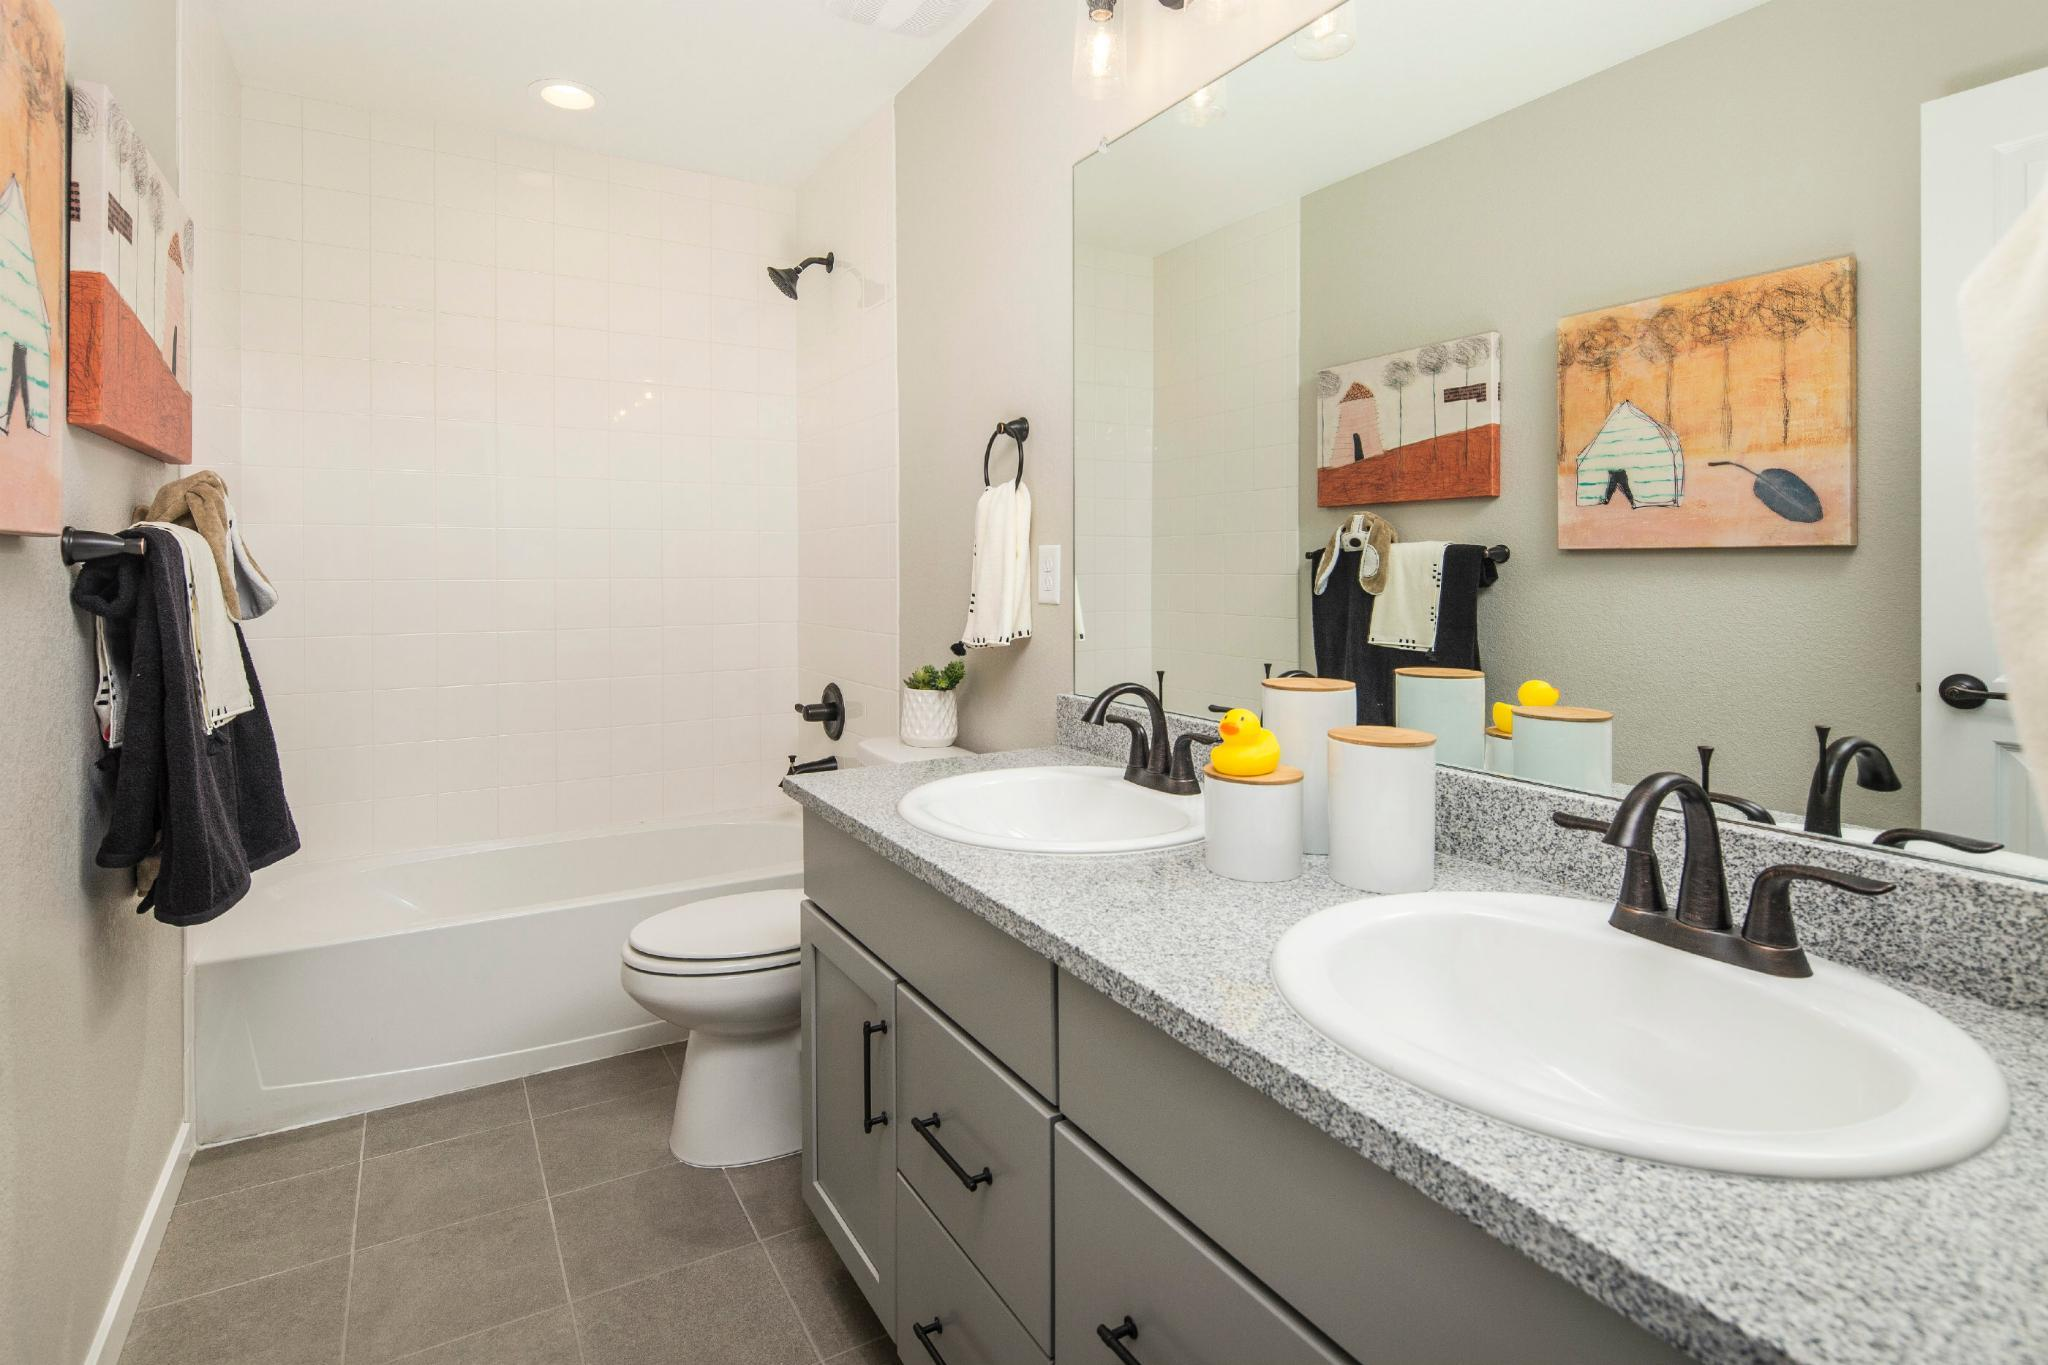 Bathroom featured in the Plan V421 By American Legend Homes in Fort Collins-Loveland, CO